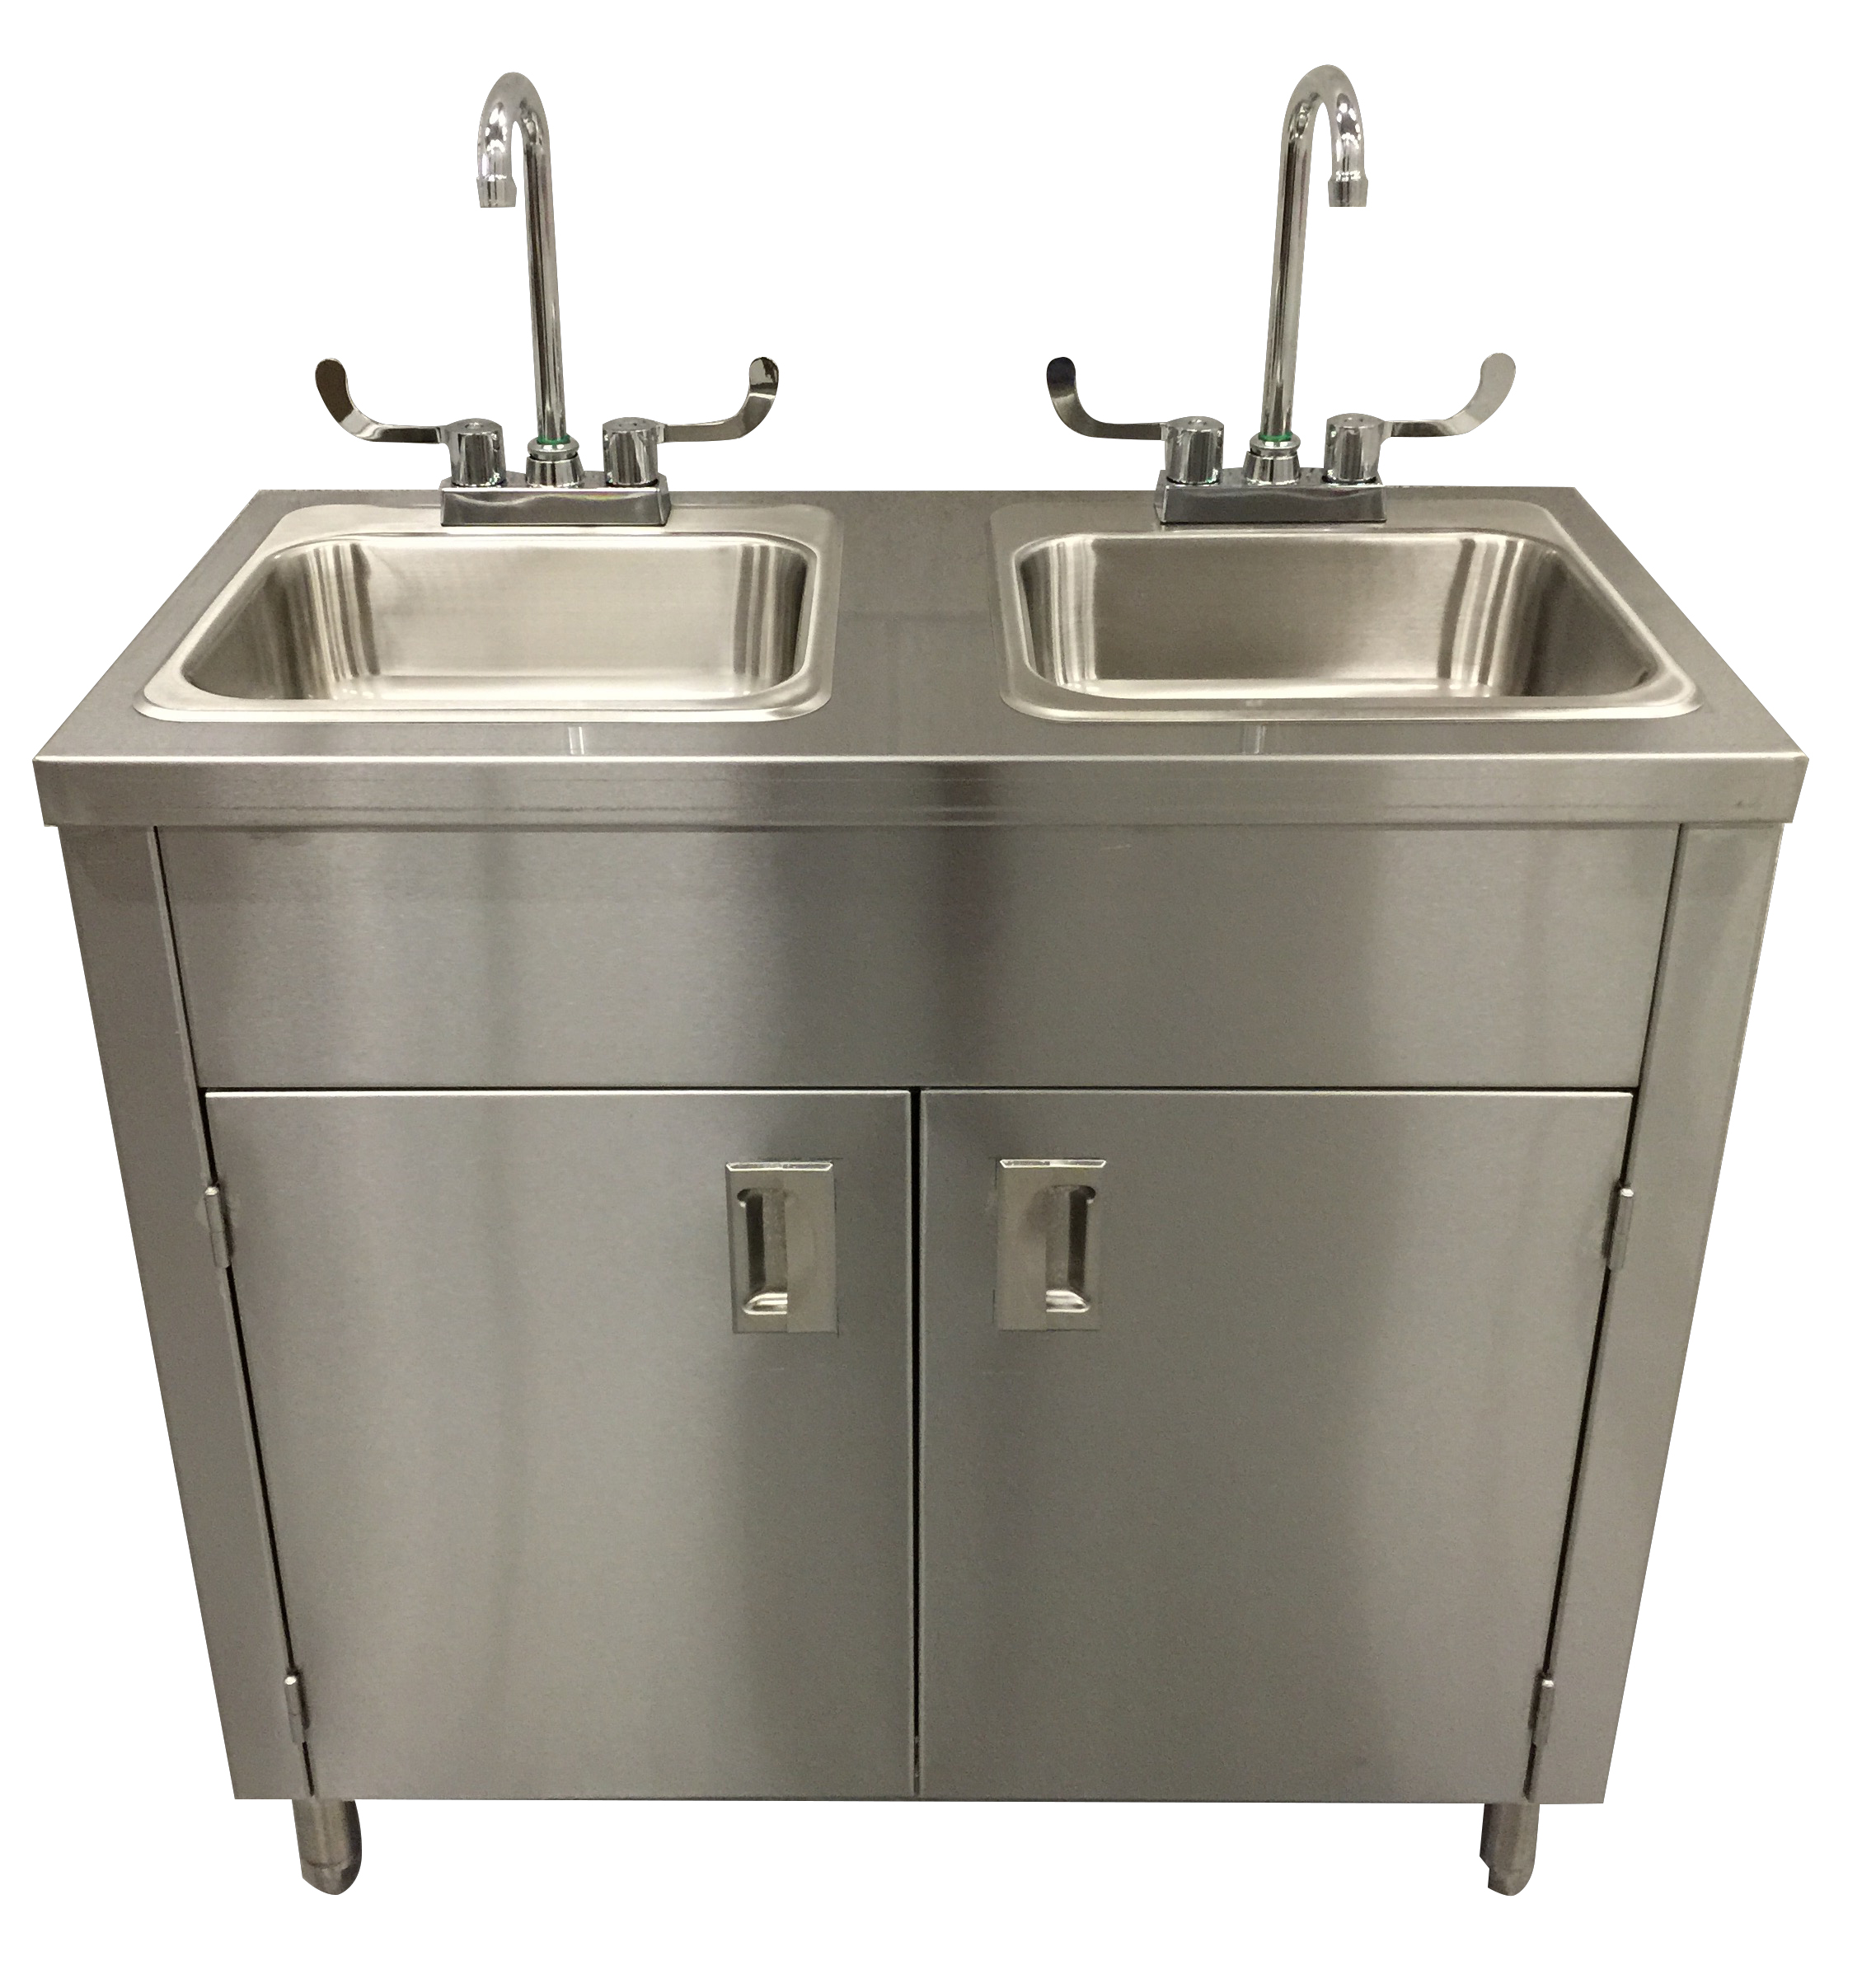 ... Portable Sink Stainless Steel Handwash Sink. Sale!